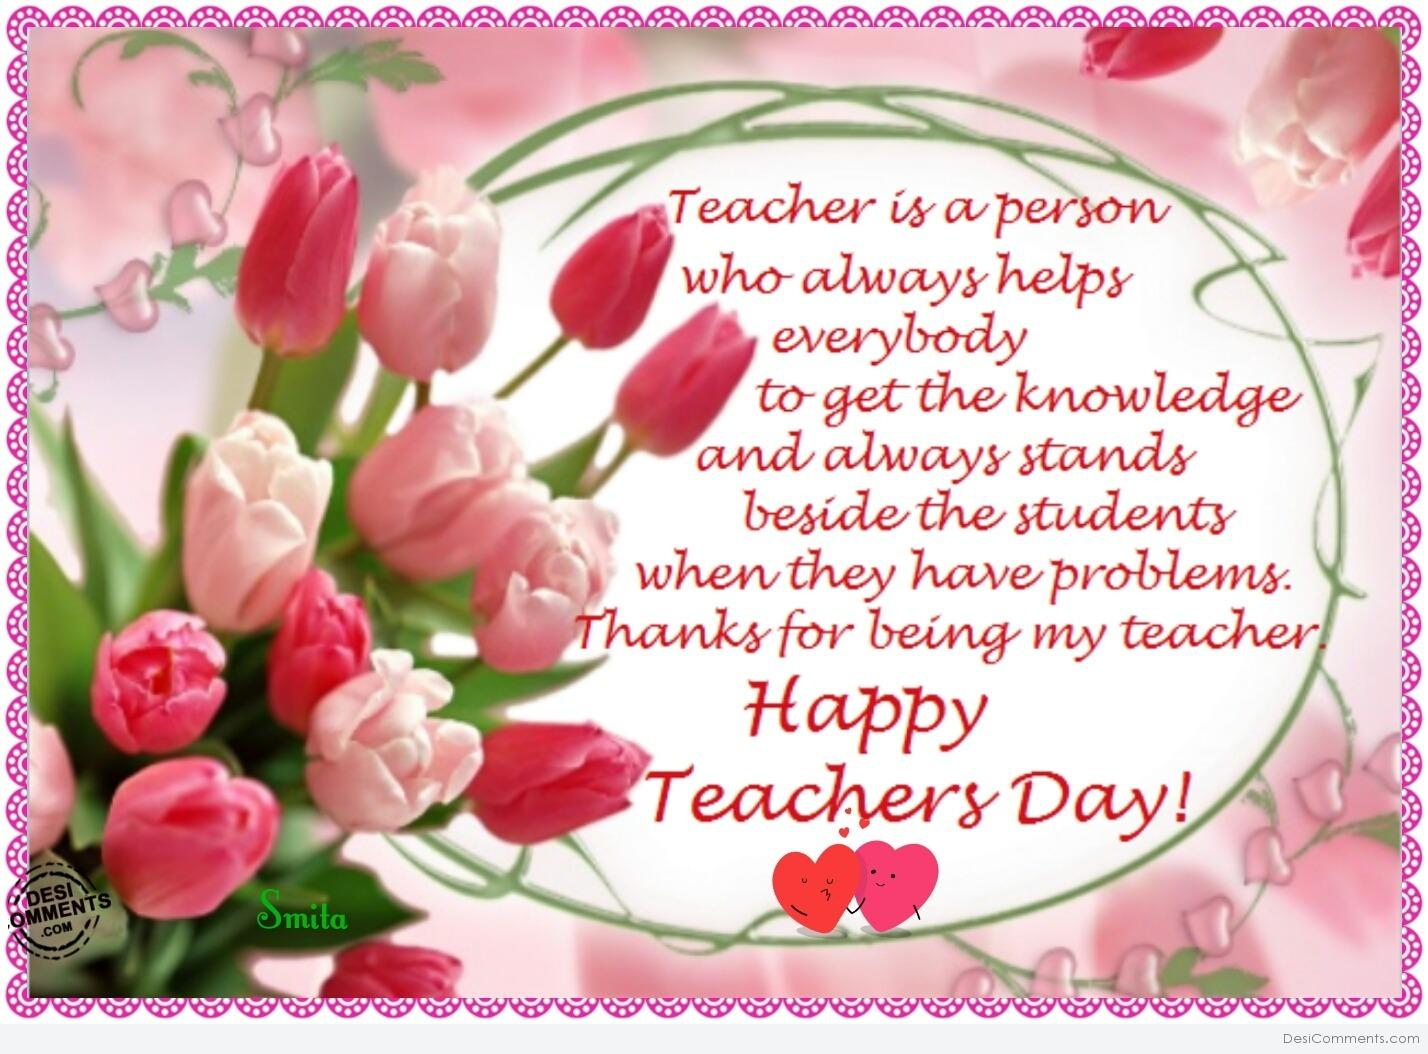 teachers day quotes images beautiful quotes for teachers teacher s day quotes images 13